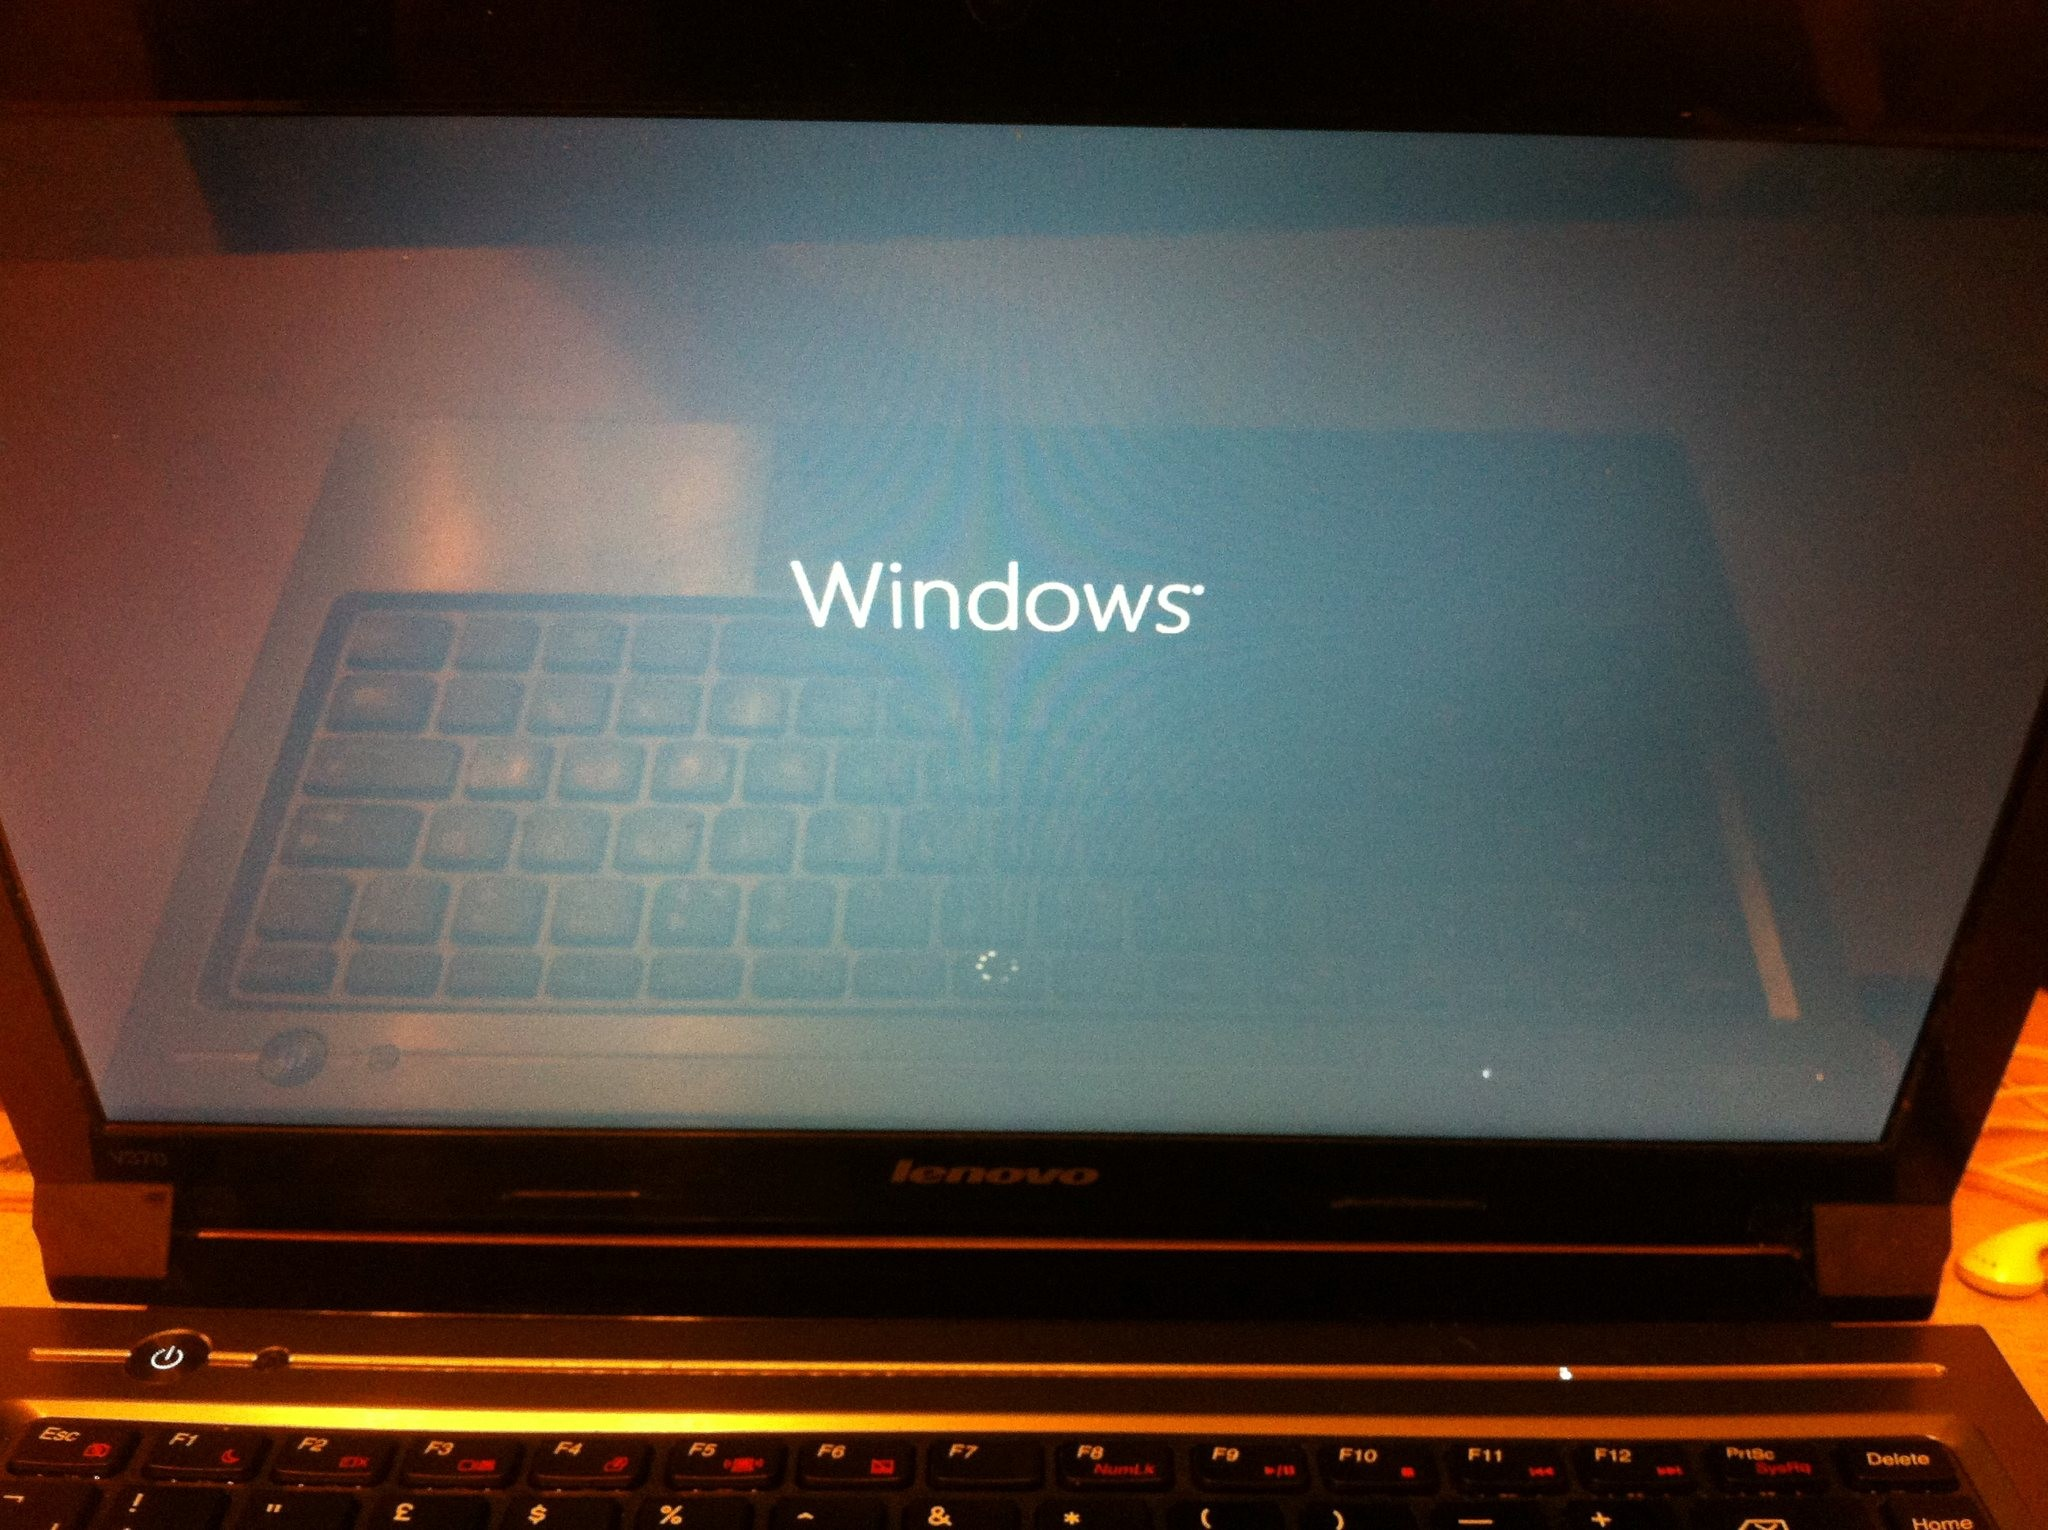 Windows 8 Release Preview Boot